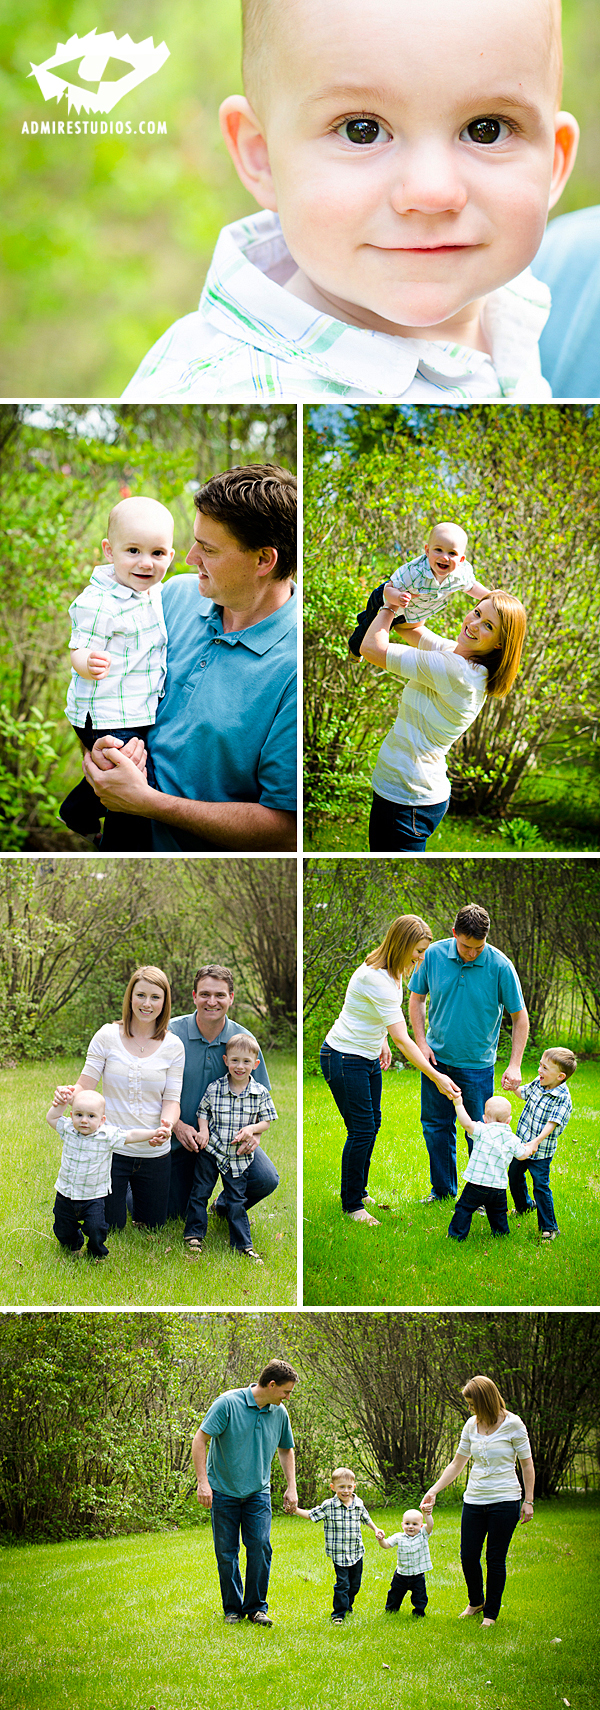 edmonton family photos